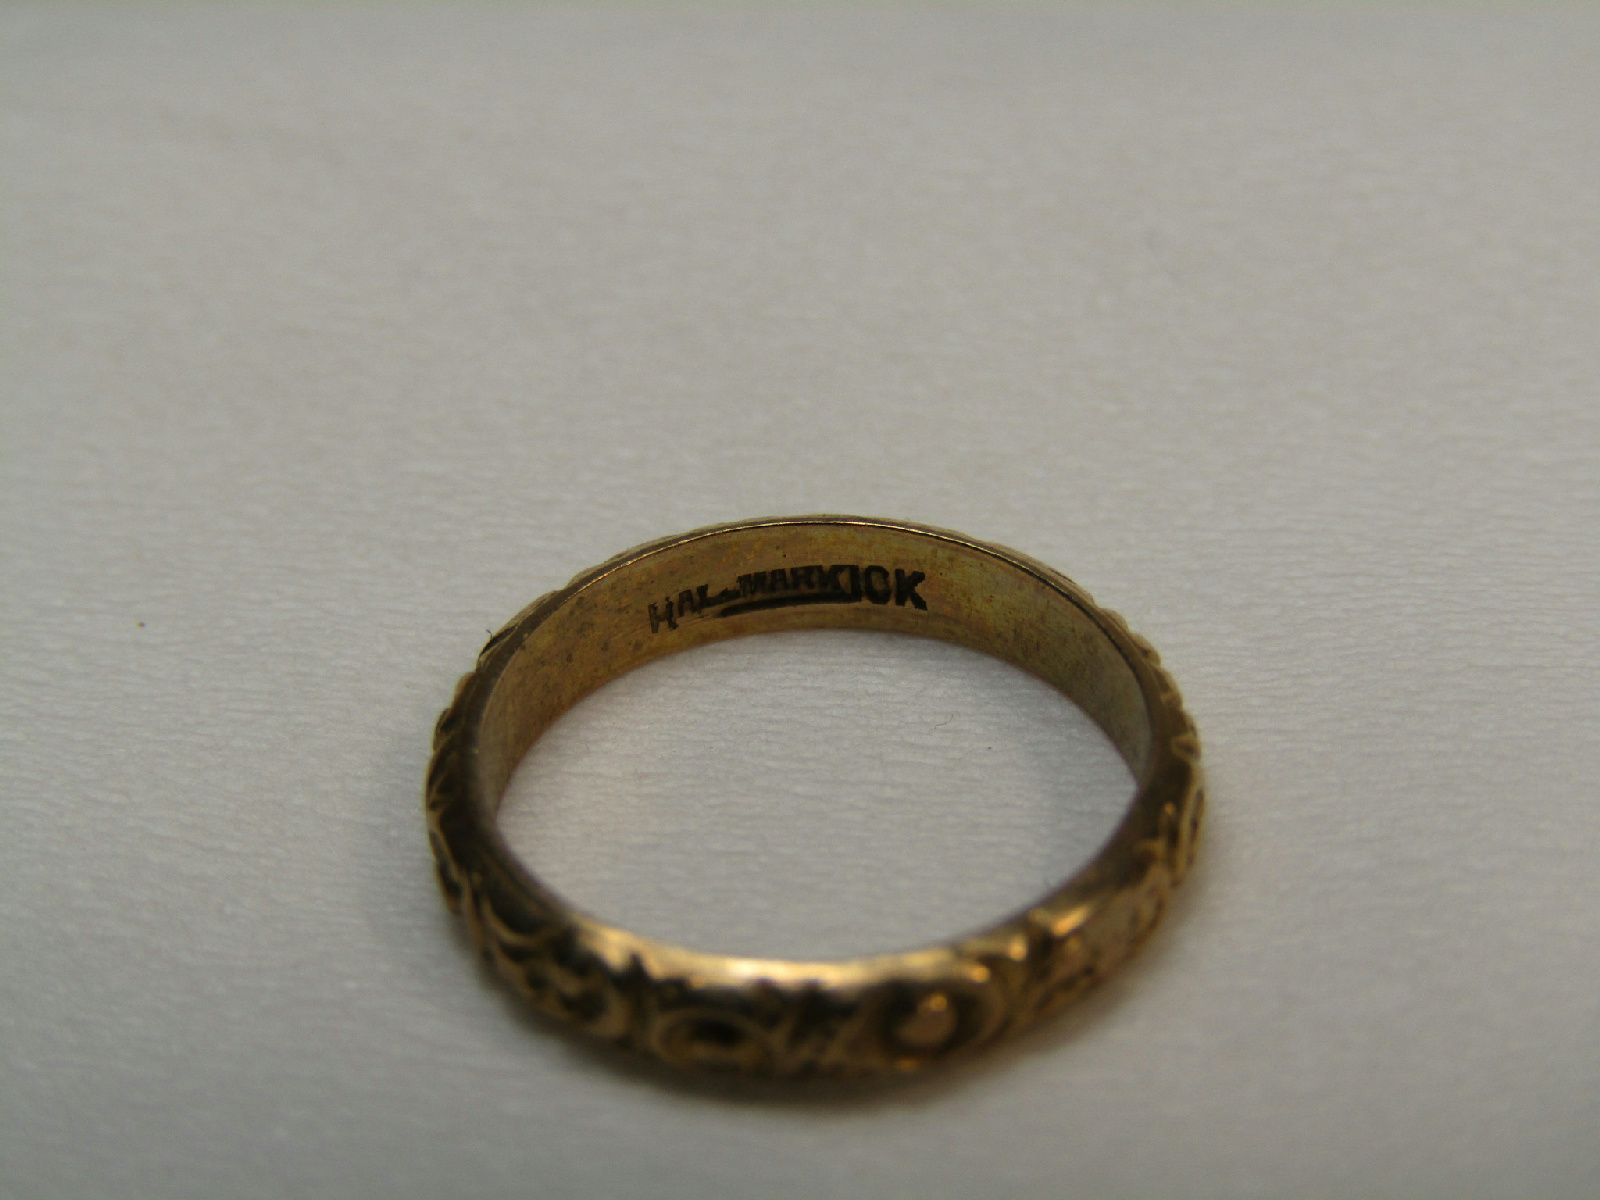 10k Yellow Gold Jewelry Vintage Baby Ring Scrolled Pattern